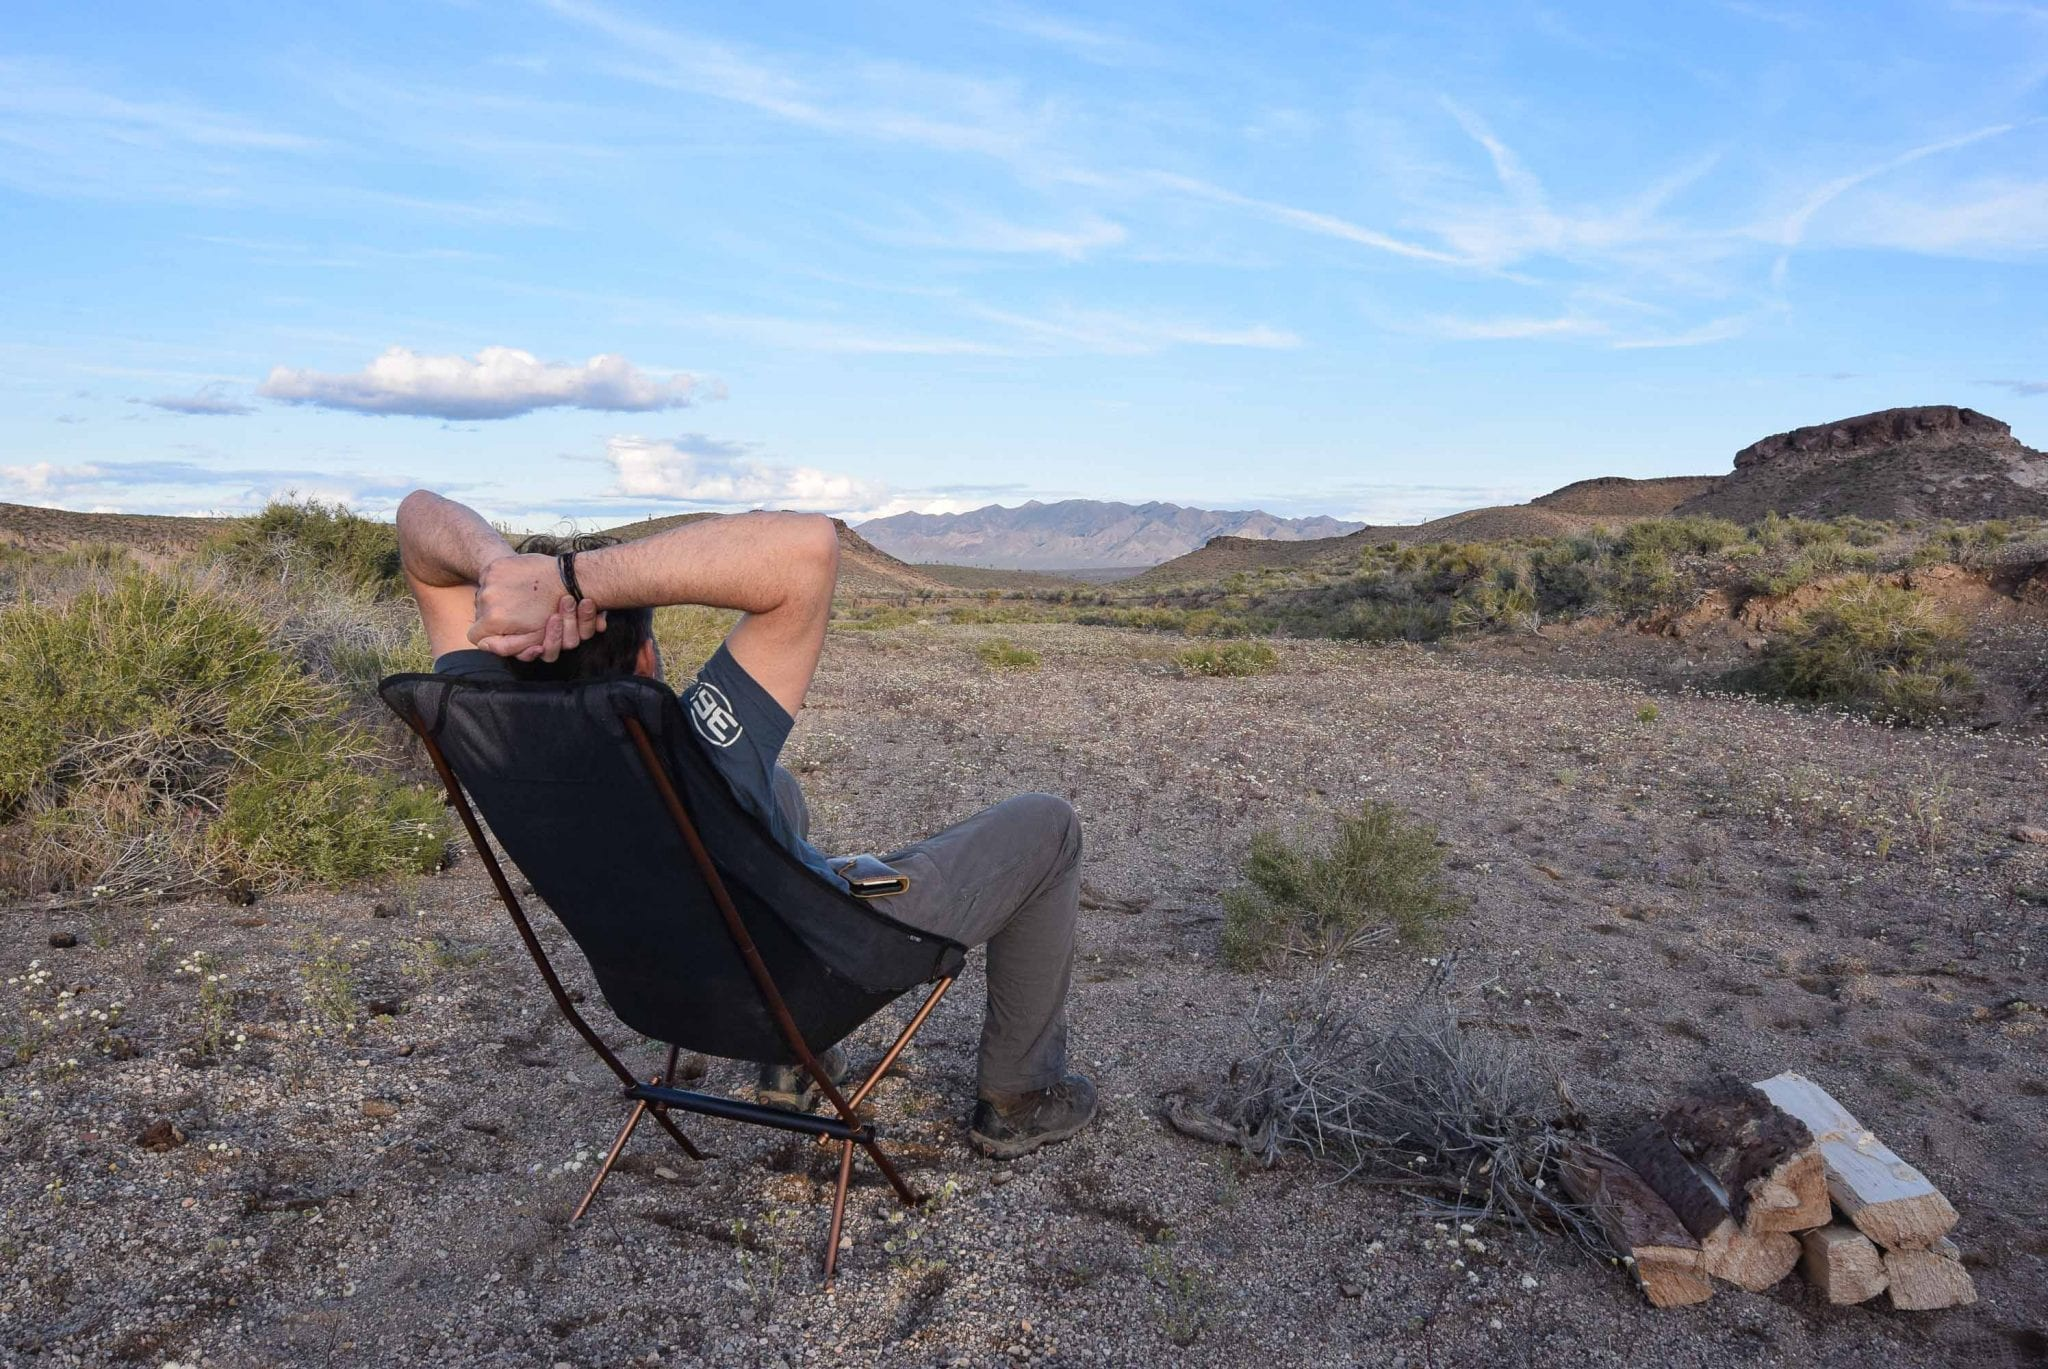 A man relaxes in a camping chair next to a stack of firewood, staring at the distant mountains and desert